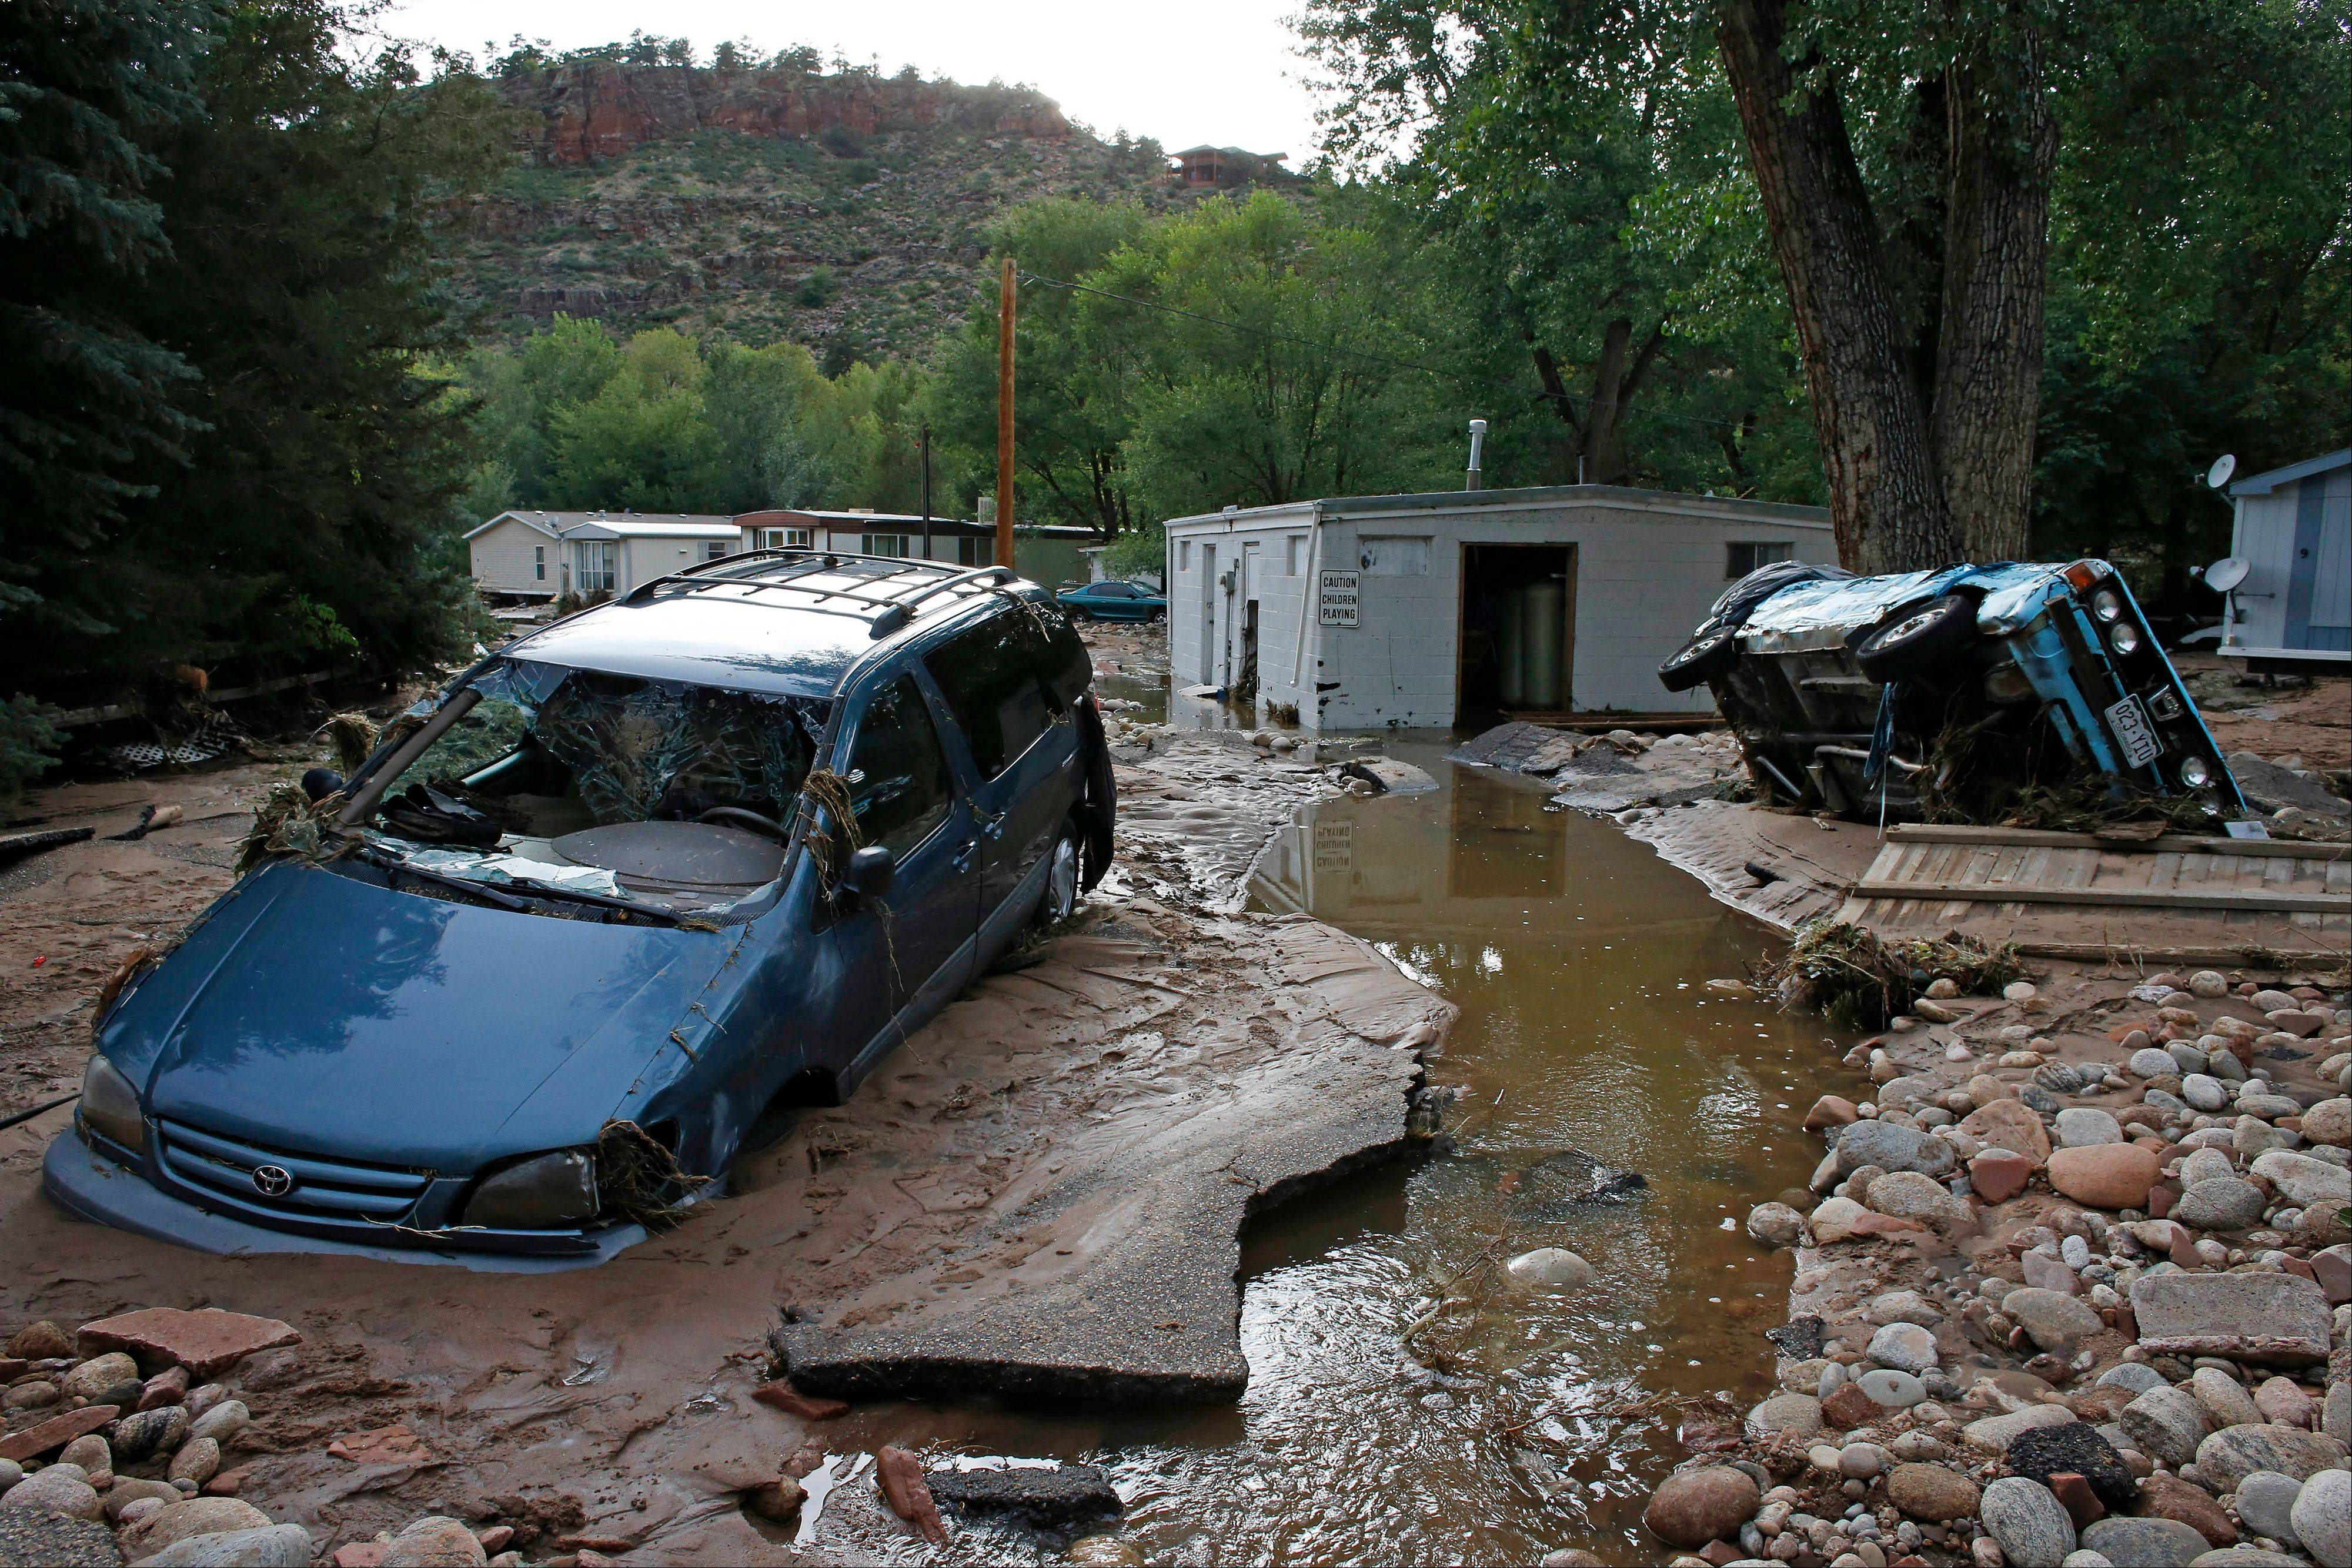 Cars lay mired in mud deposited by floods in Lyons, Colo.